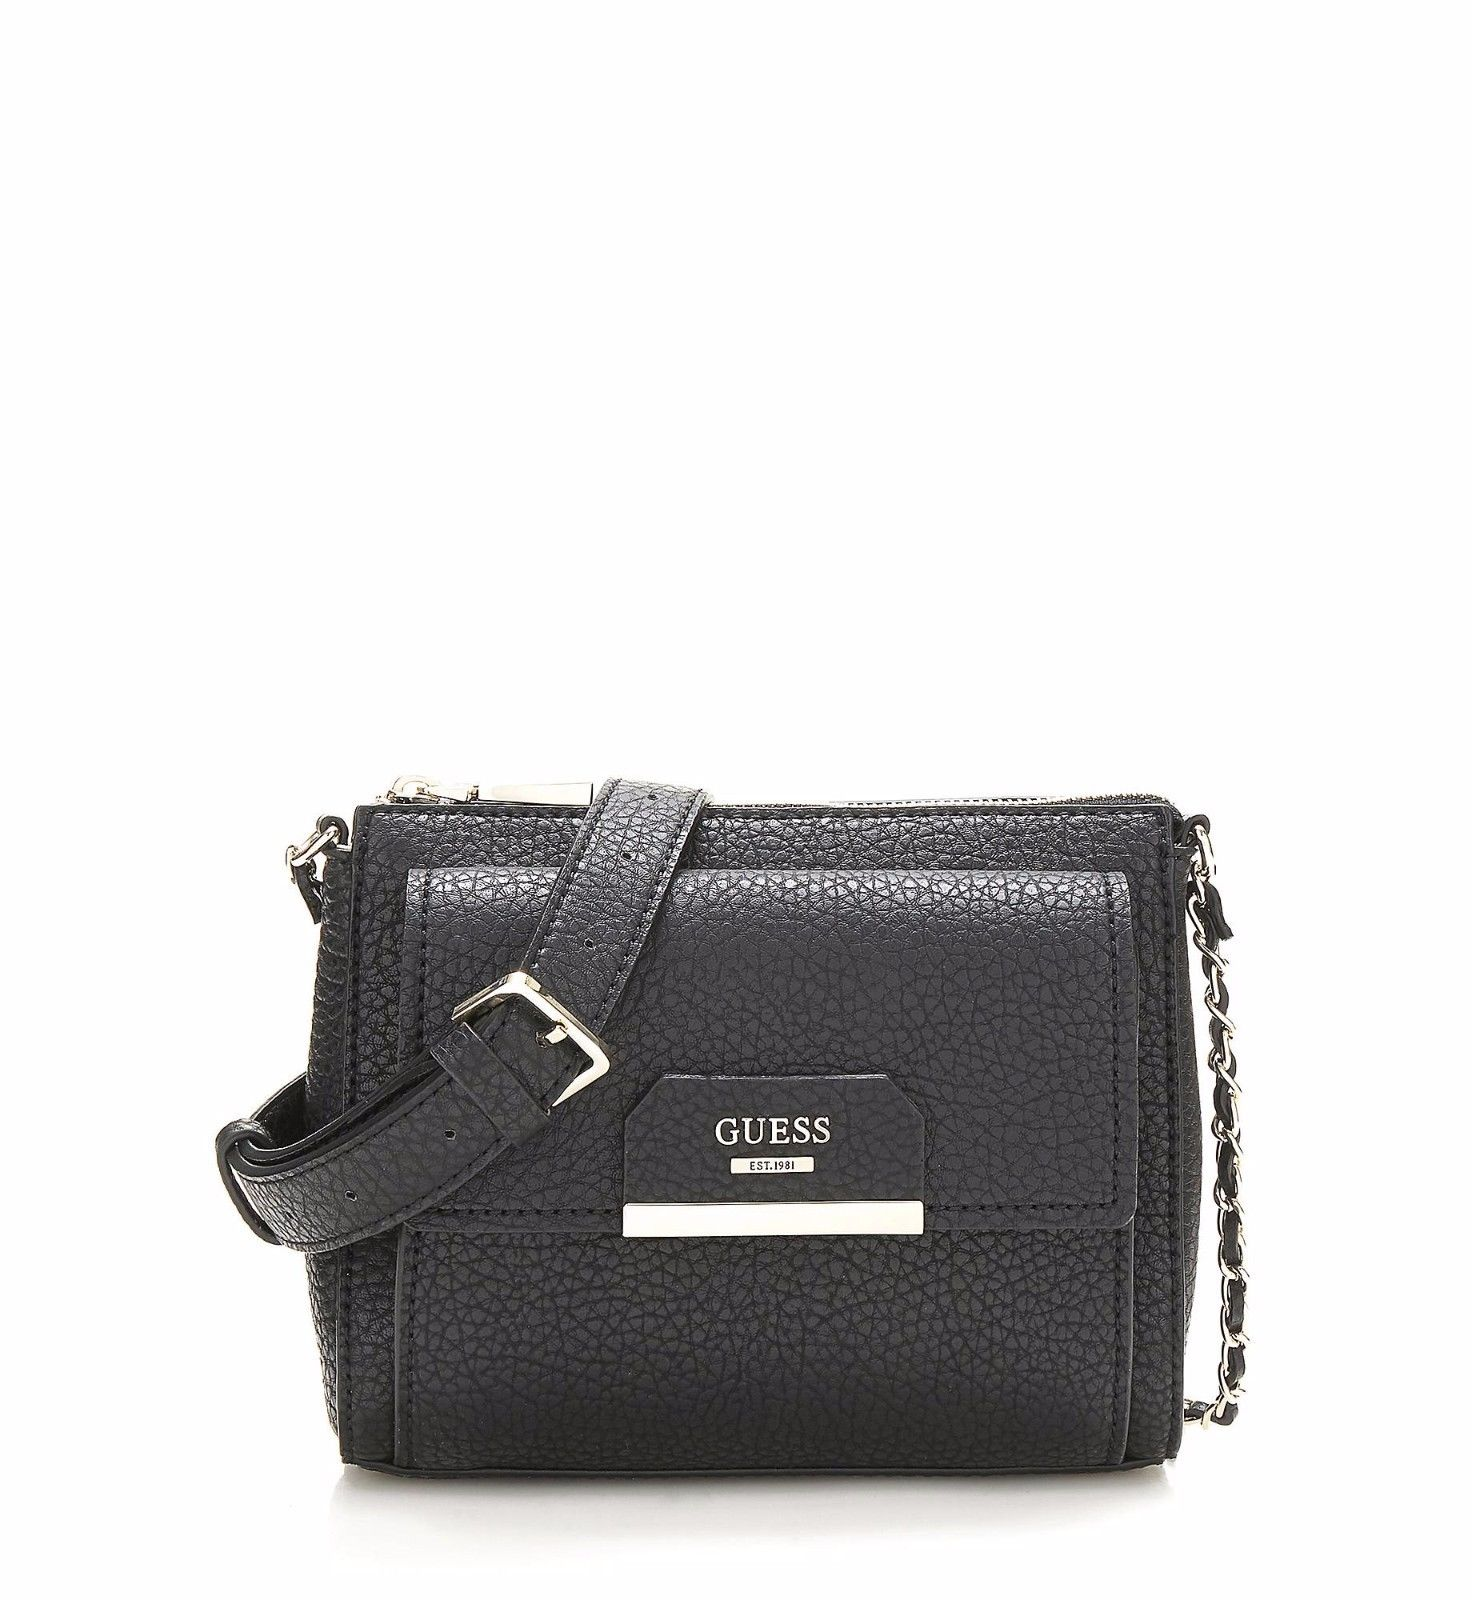 BORSA BORSE DONNA GUESS ORIGINAL HWPB6683700 ECO PELLE BAG RYNN A/I 2017/18 NEW